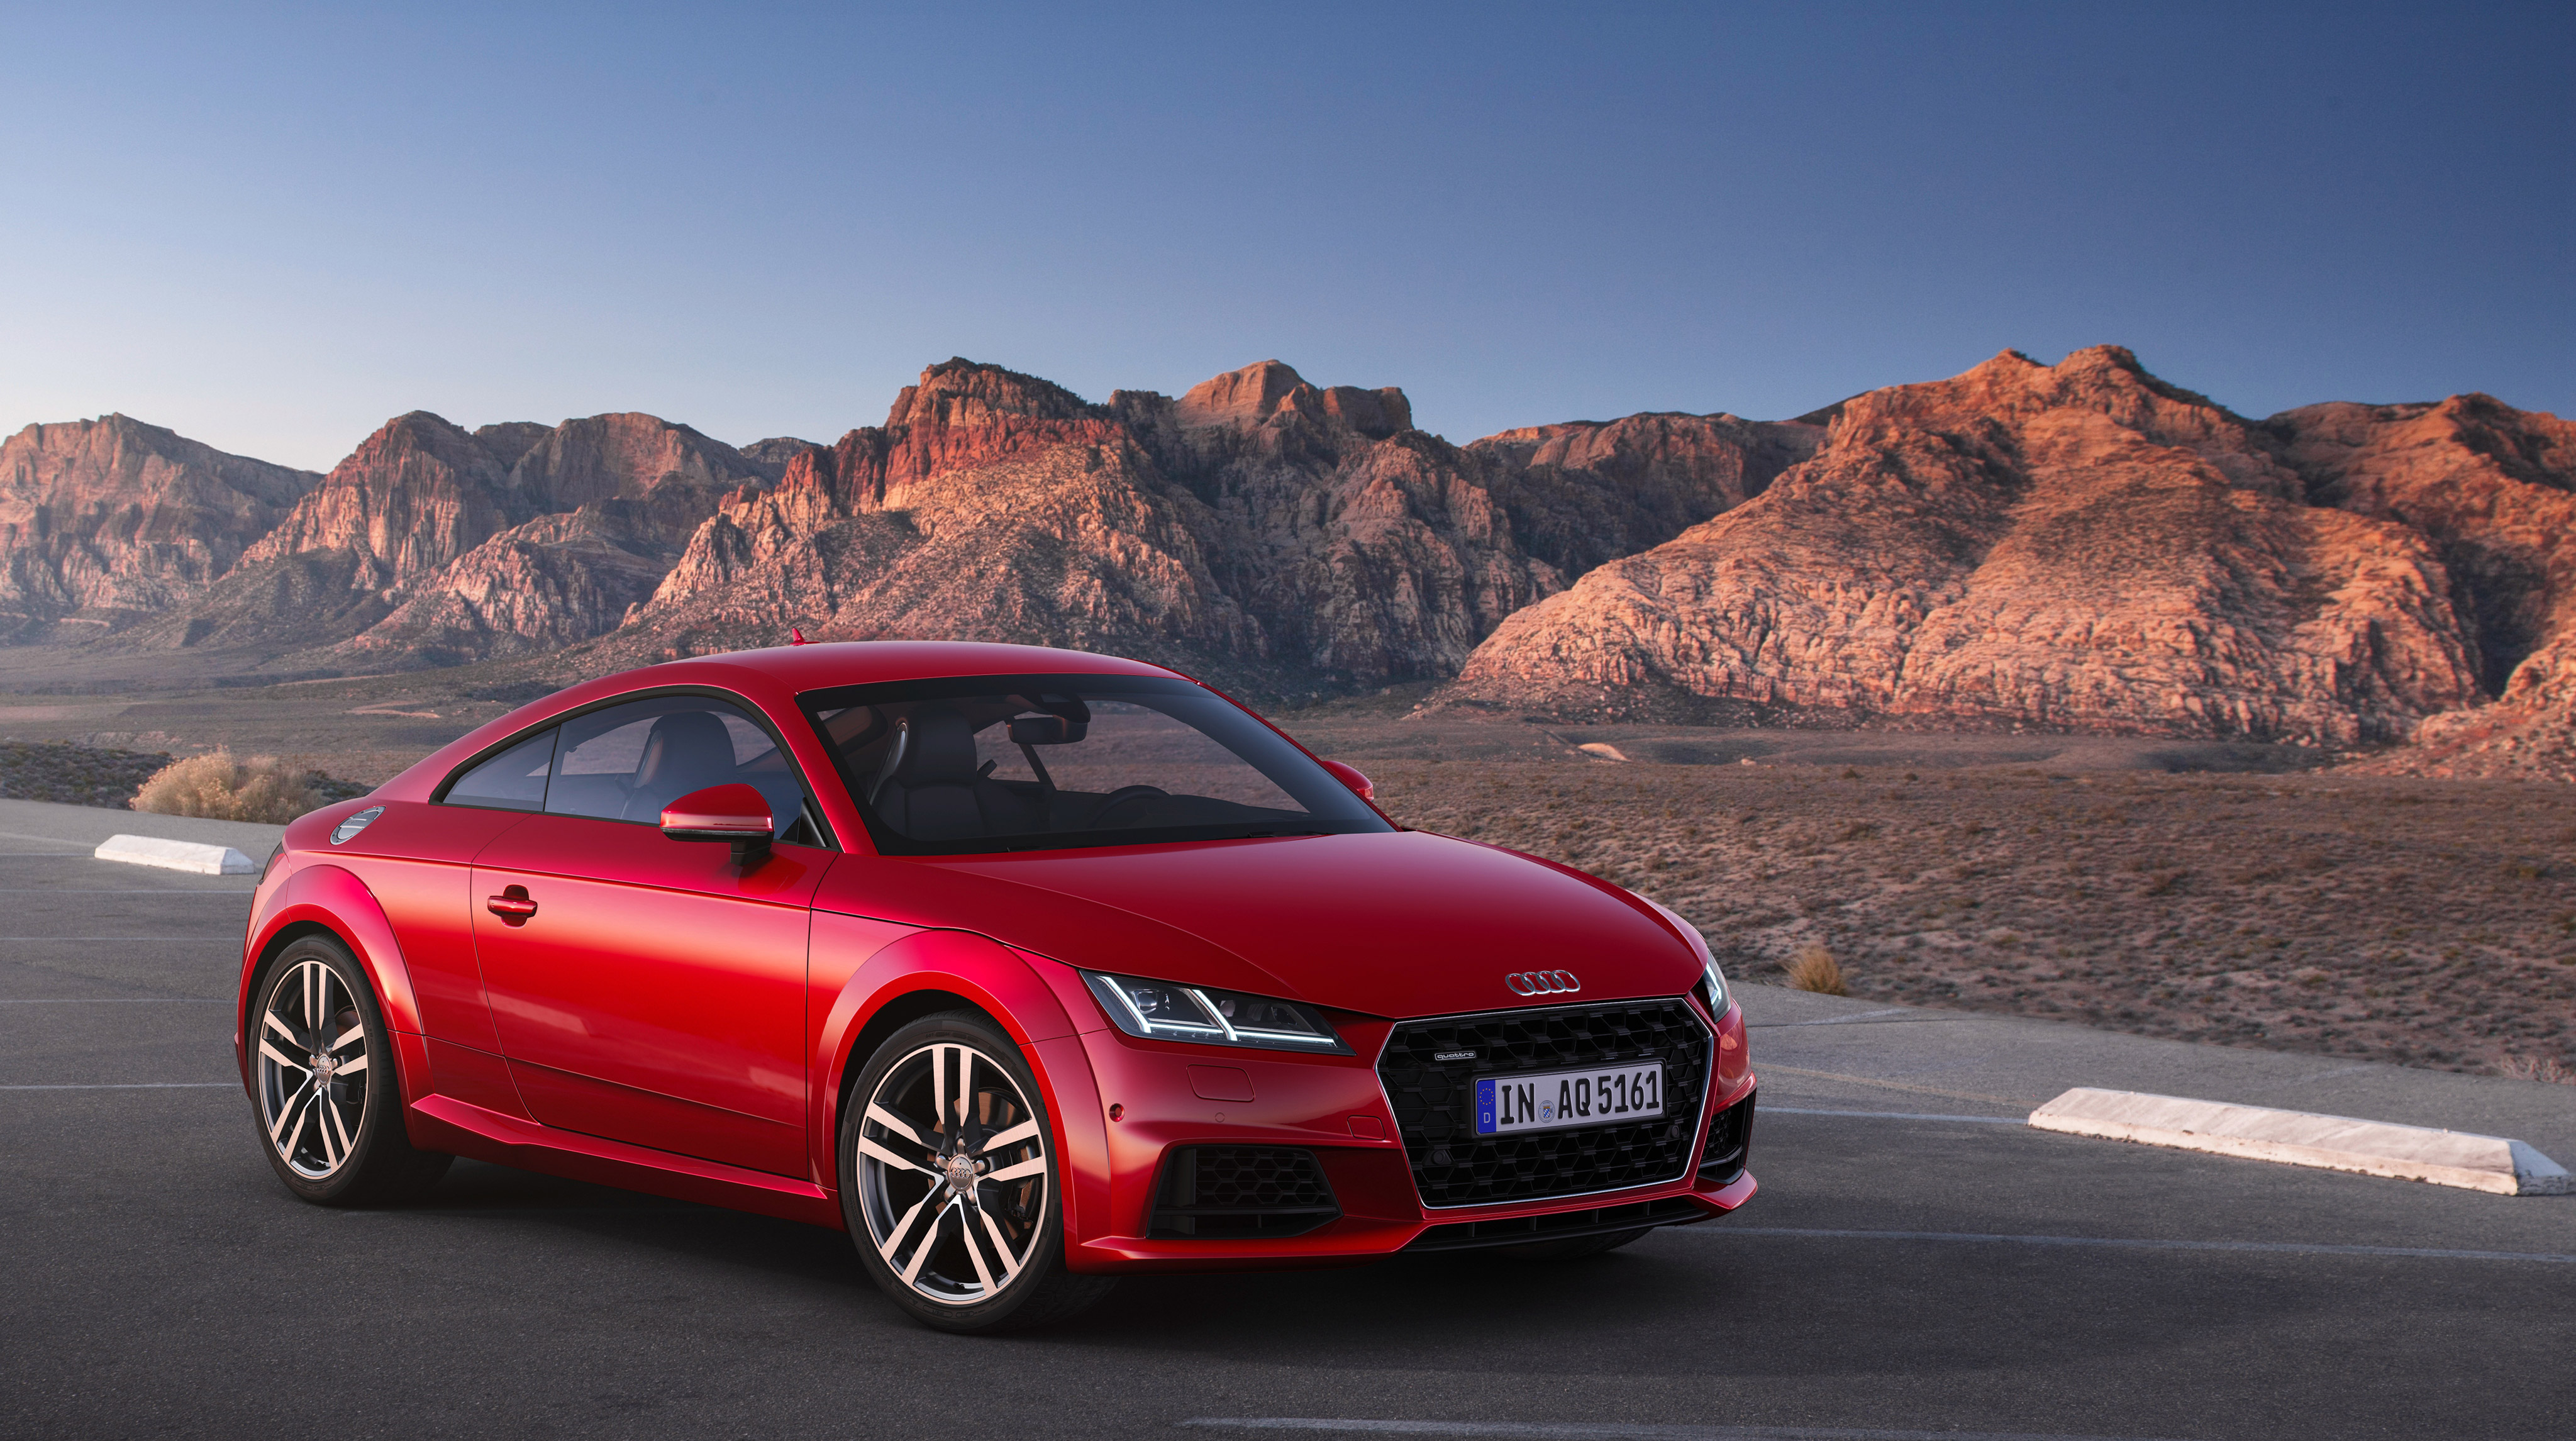 1366x768 4k Audi Tt Coupe 45 Tfsi Quattro 1366x768 Resolution Hd 4k Wallpapers Images Backgrounds Photos And Pictures